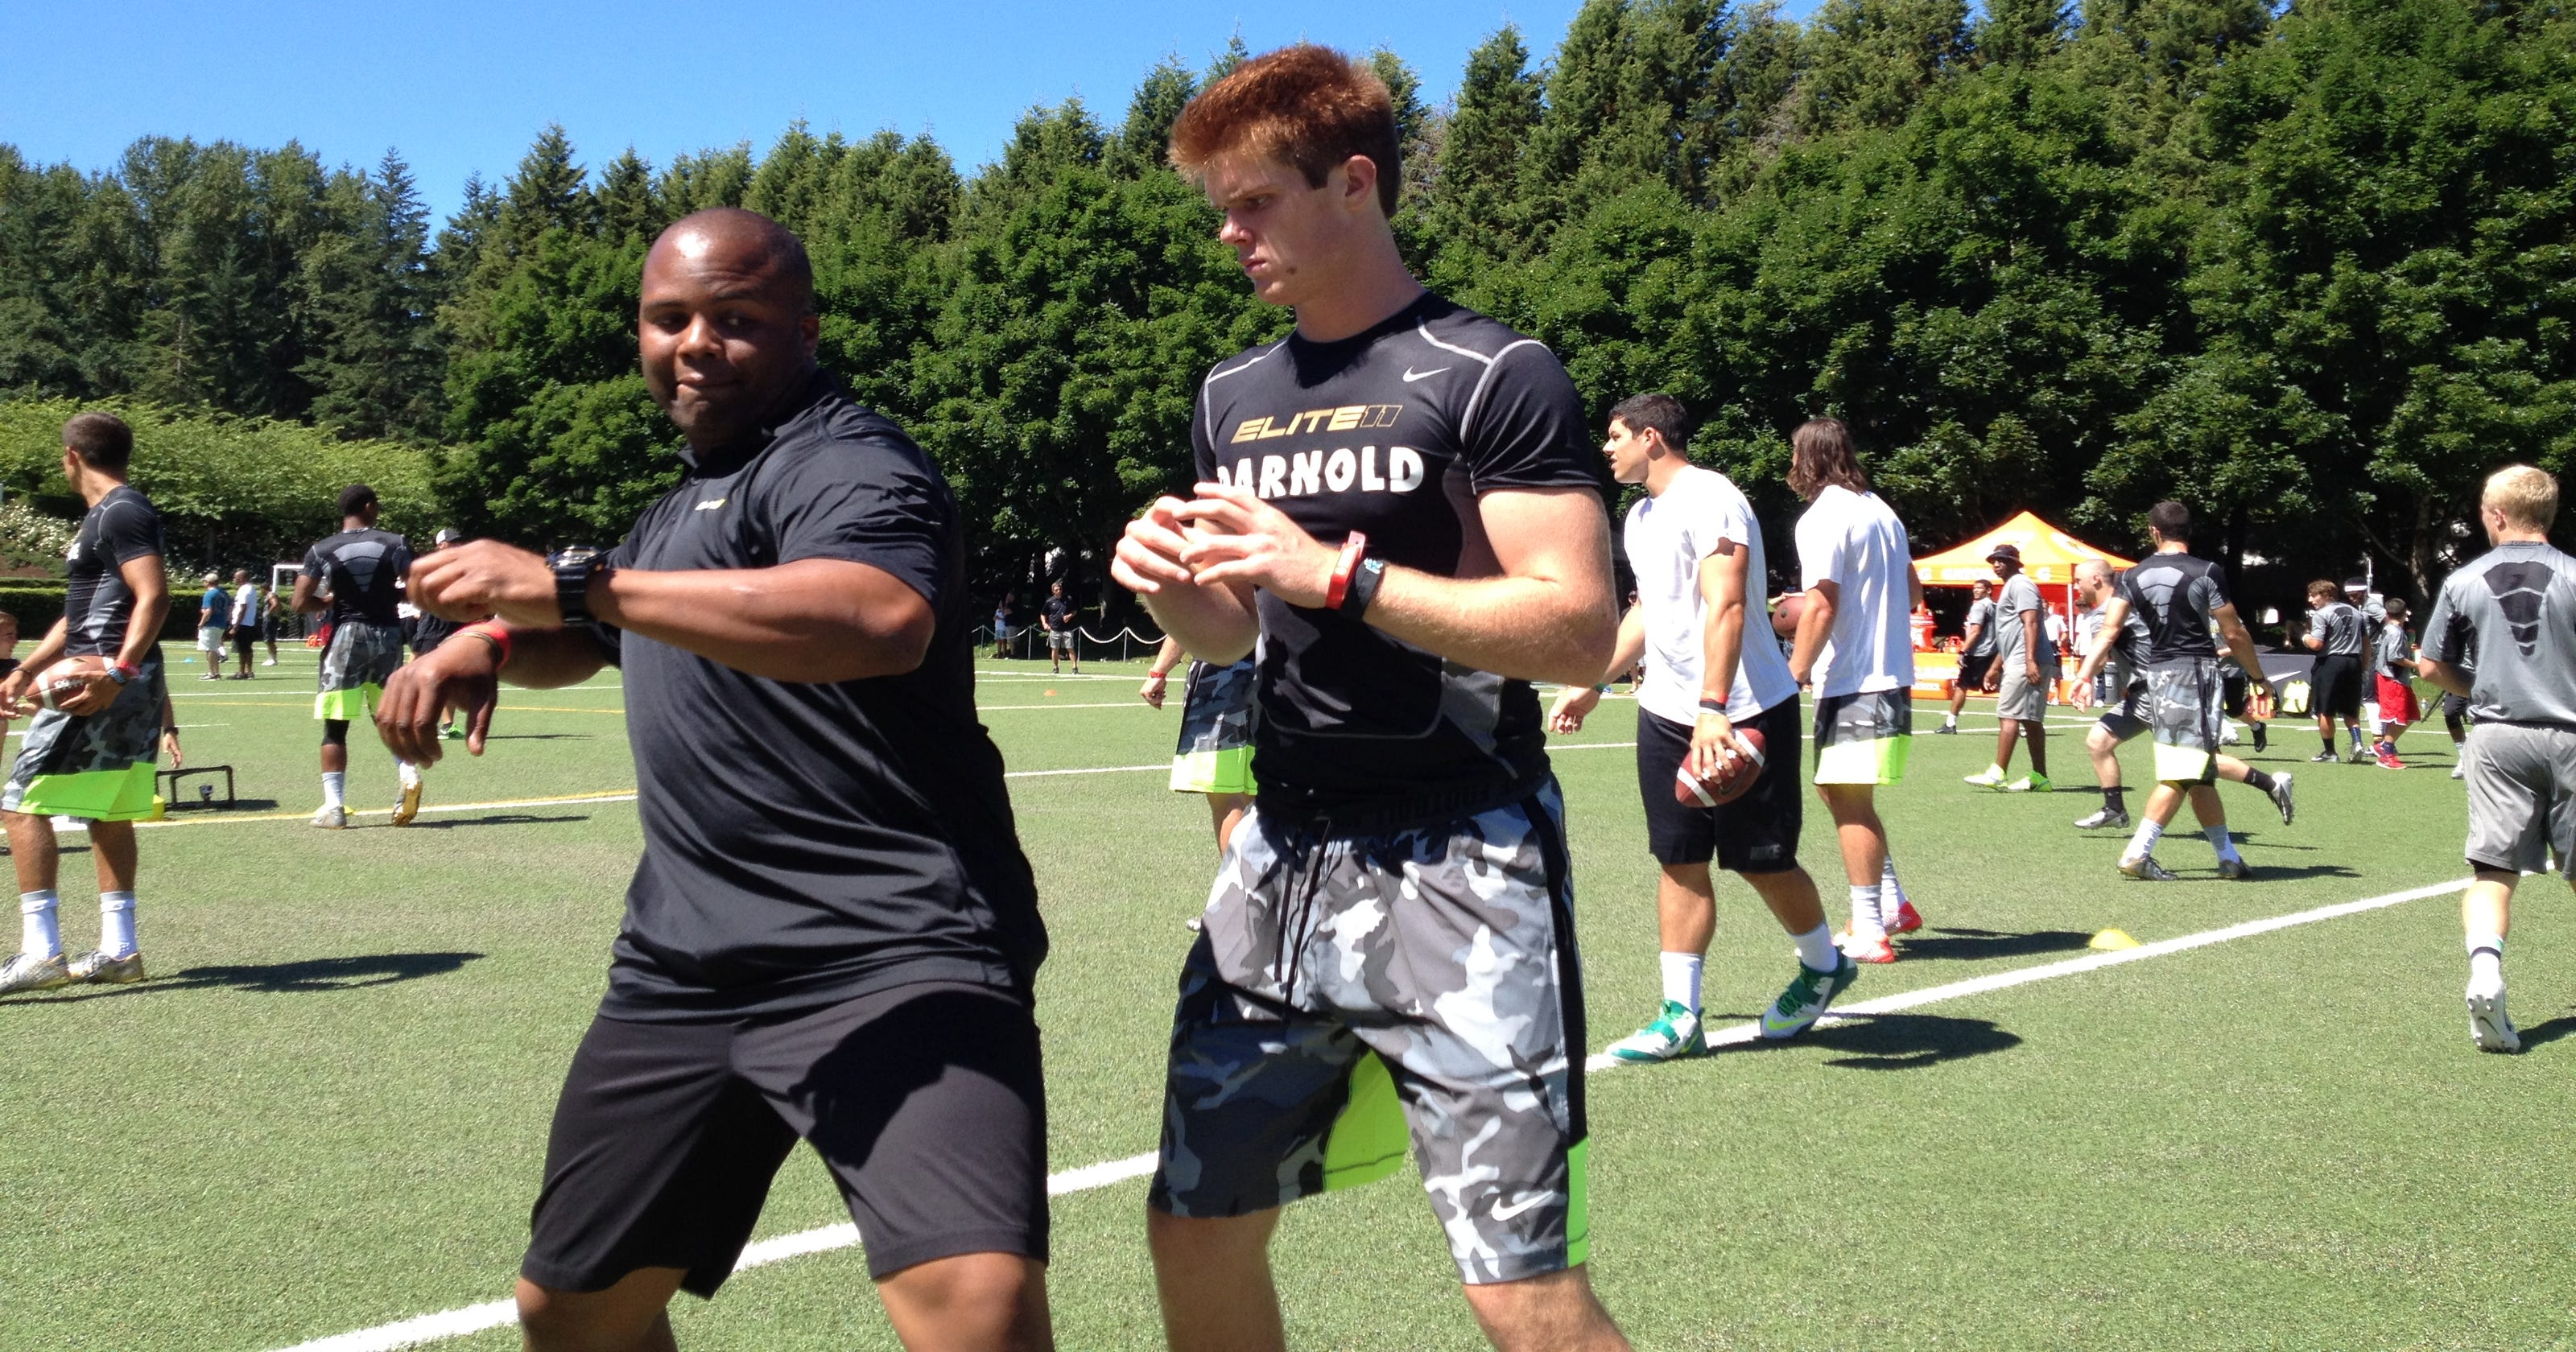 118b135ddfa Private coaches growing influence on college quarterbacks